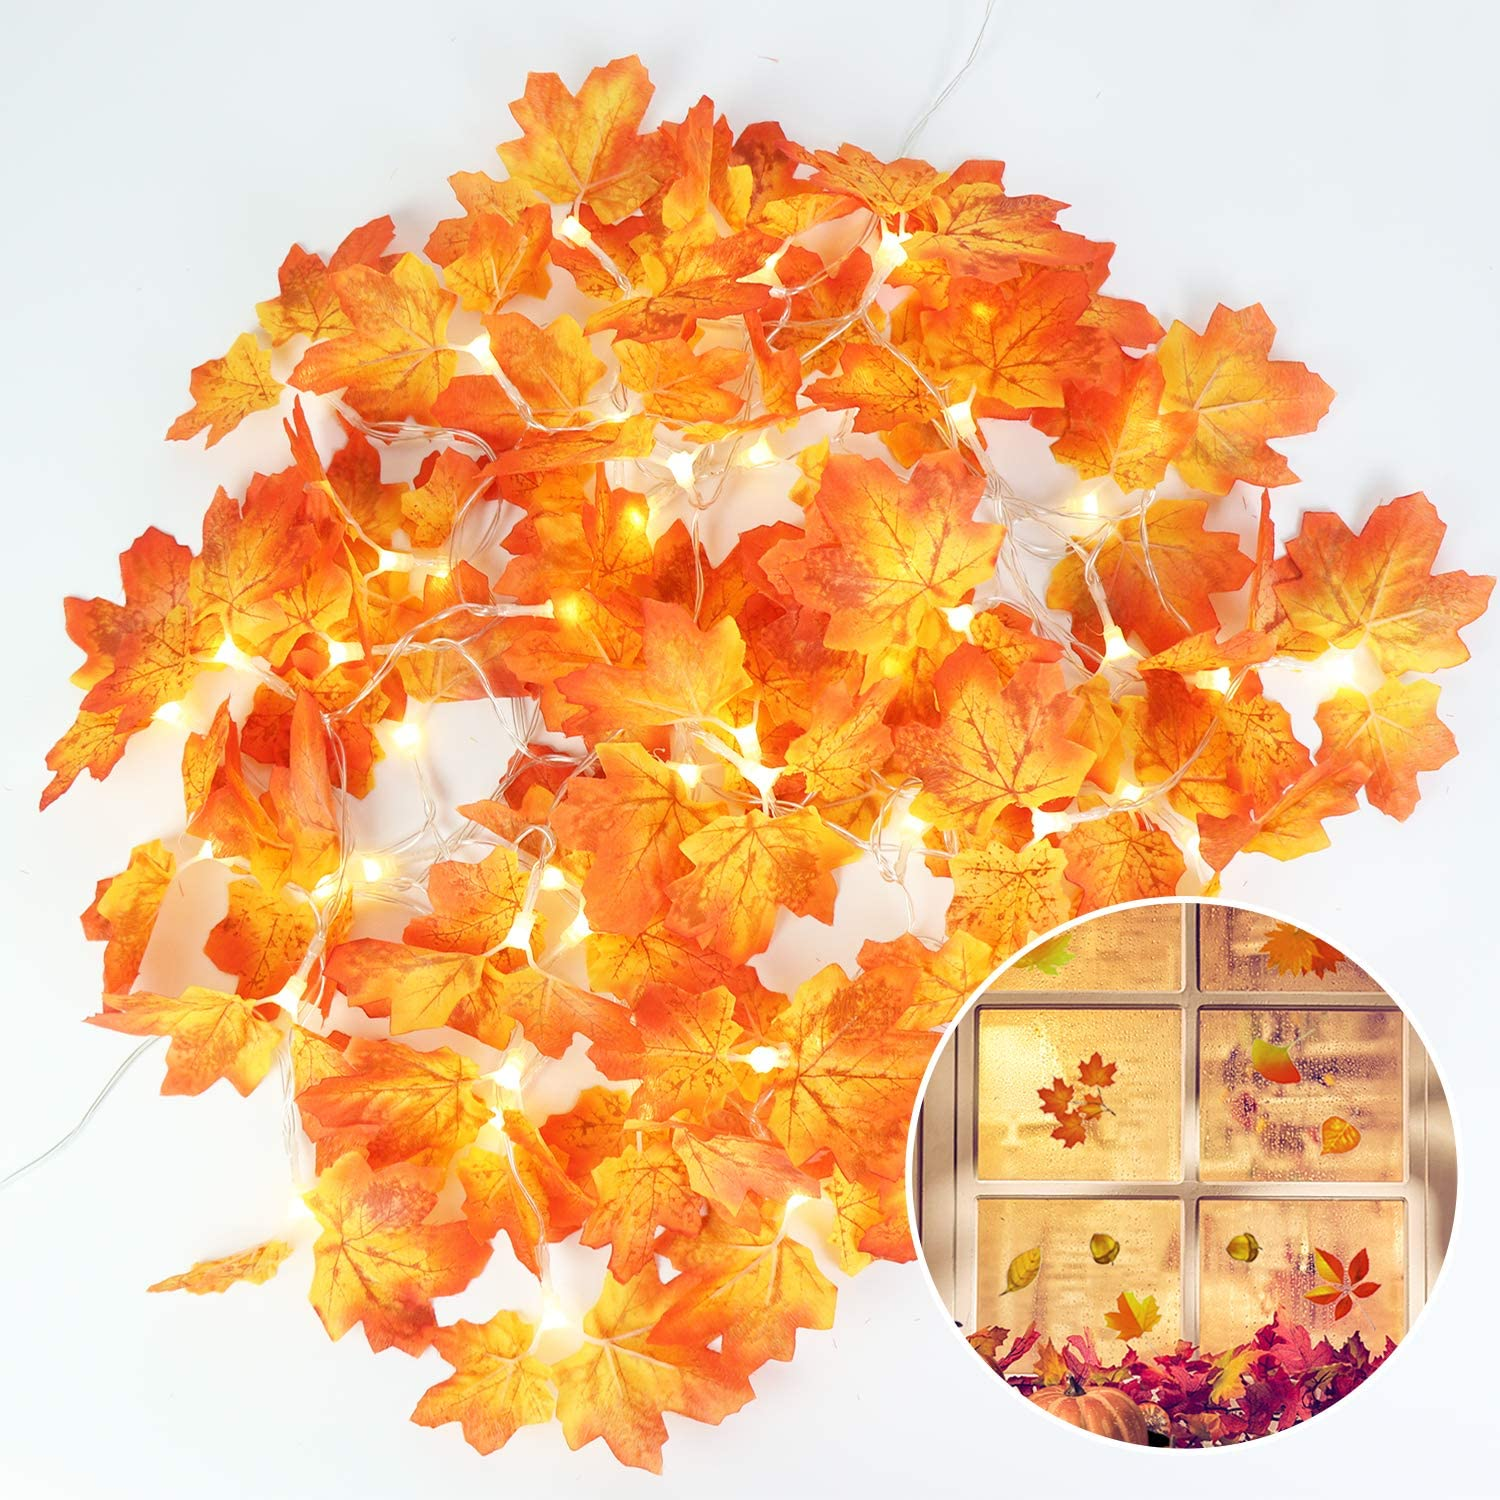 GPODER Thanksgiving Decorations Set,20 LED 8.2 FT Fall Garland Light 2 Pack for Gift Party Autumn Decor String Light (Warm White)